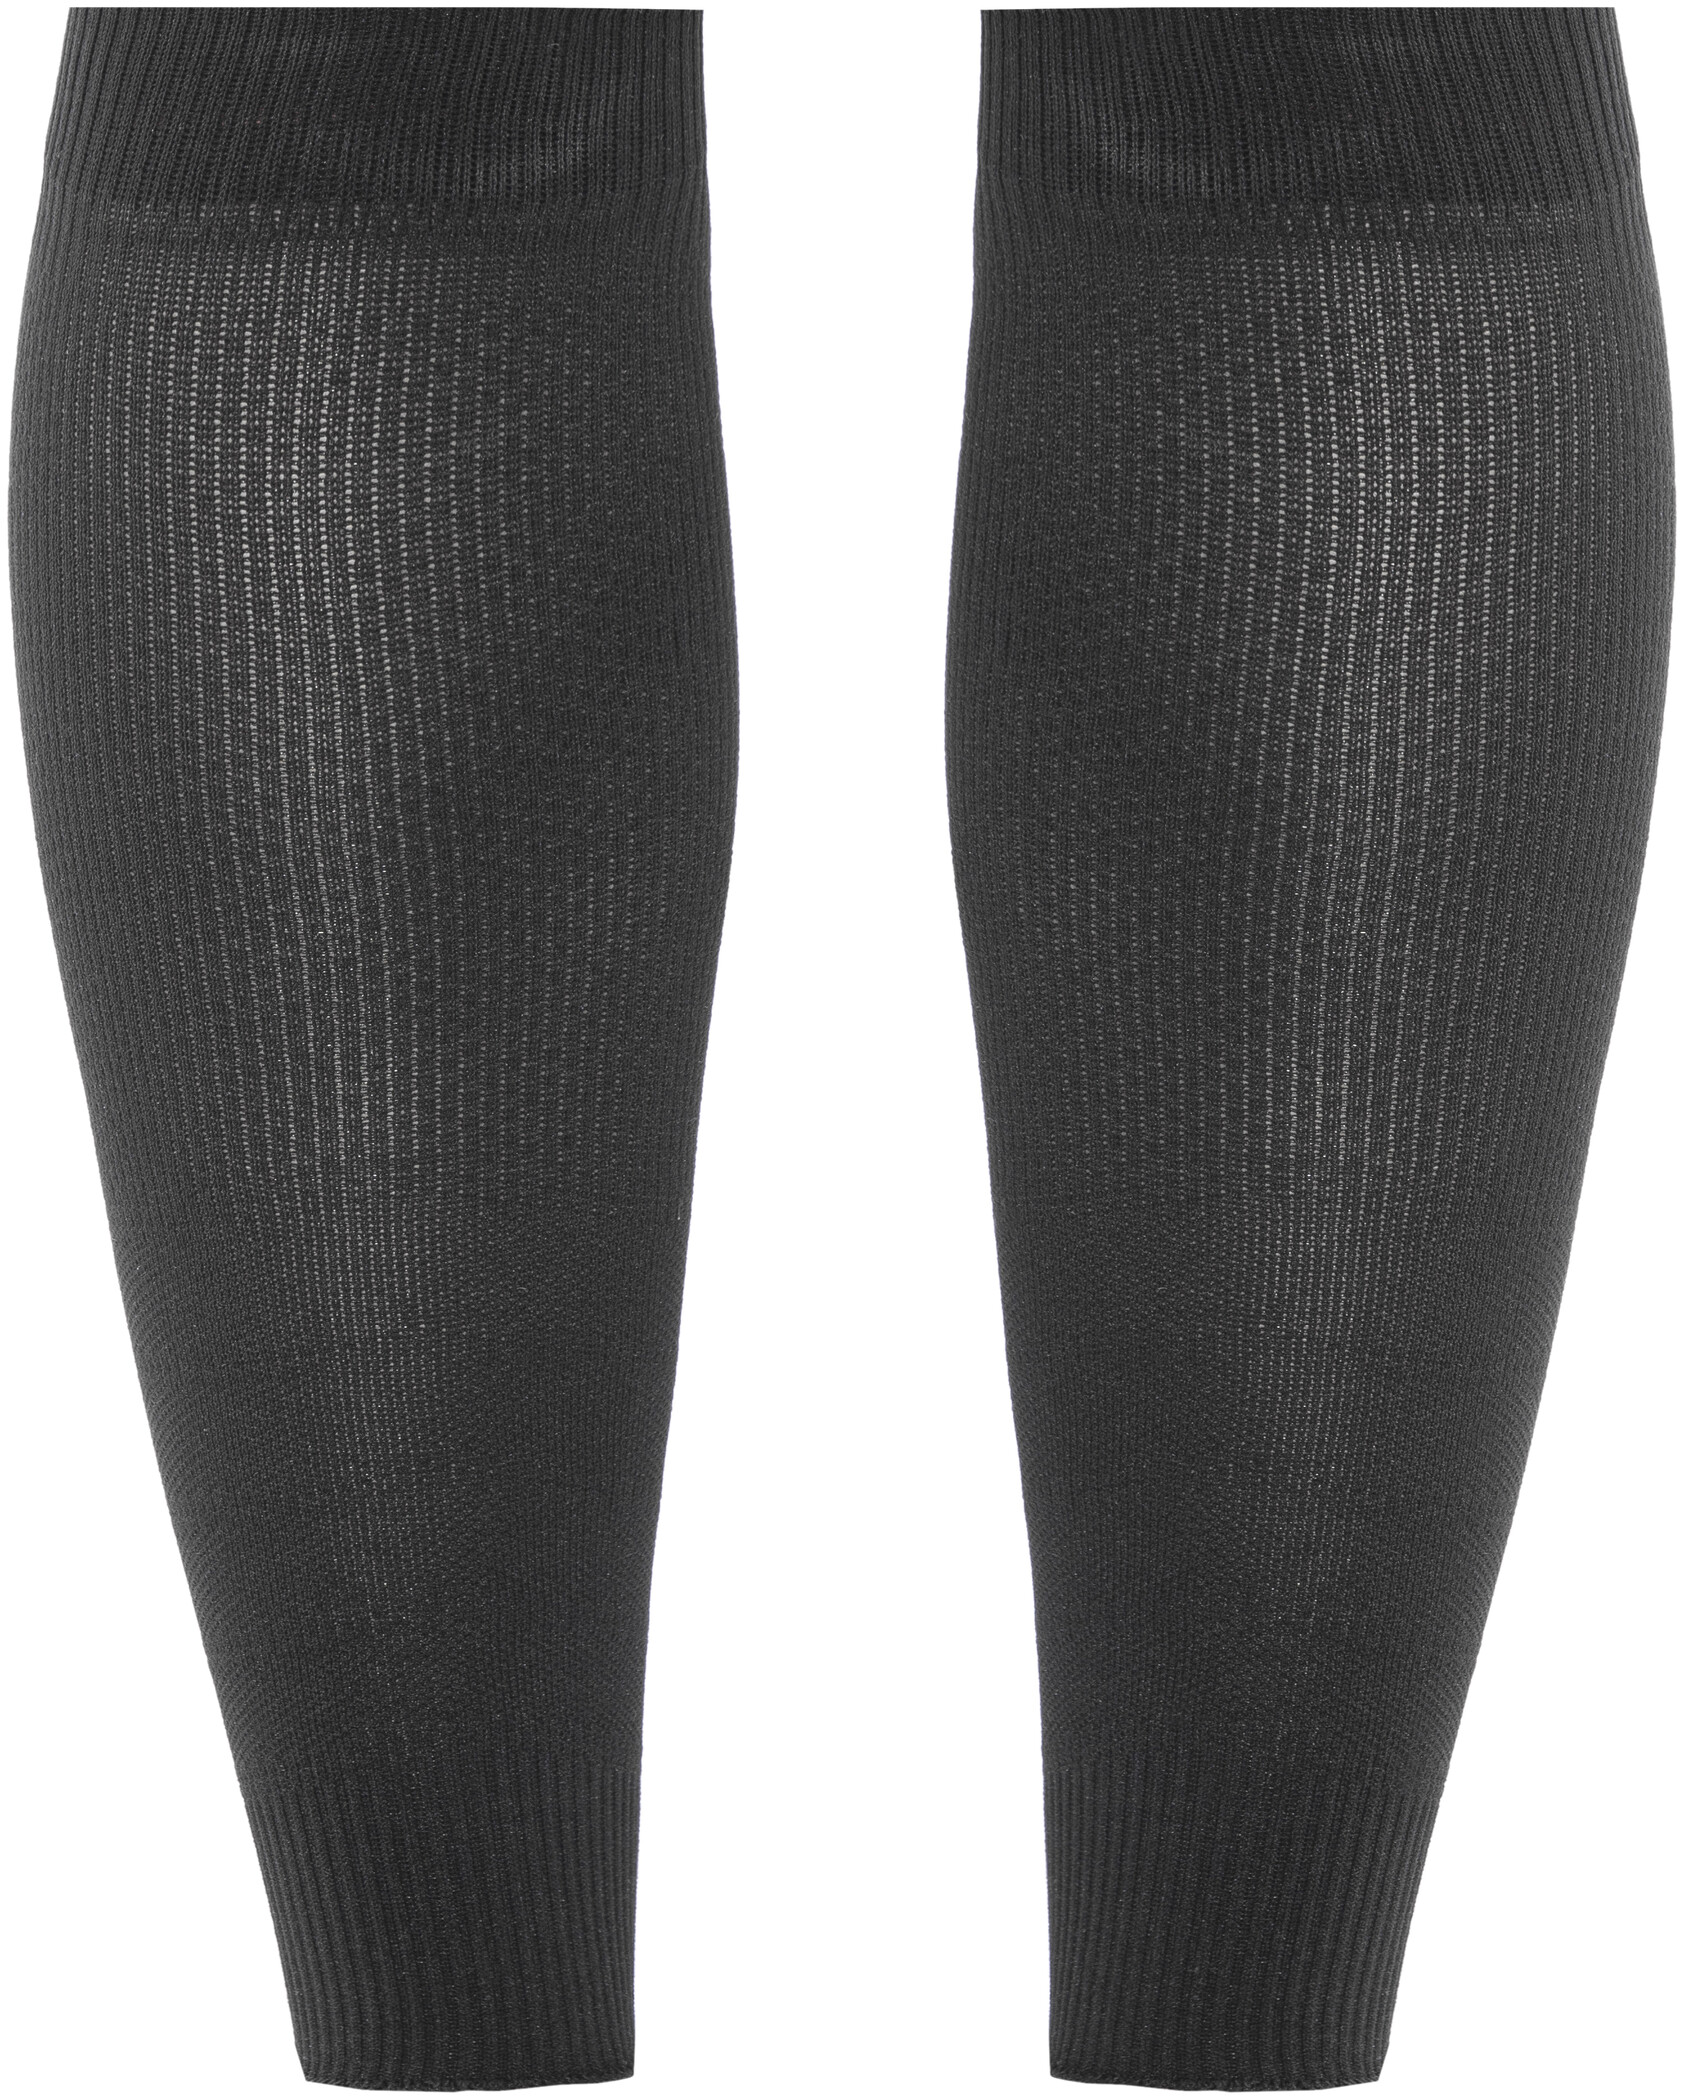 Gococo Compression Varmere, black (2019) | Compression